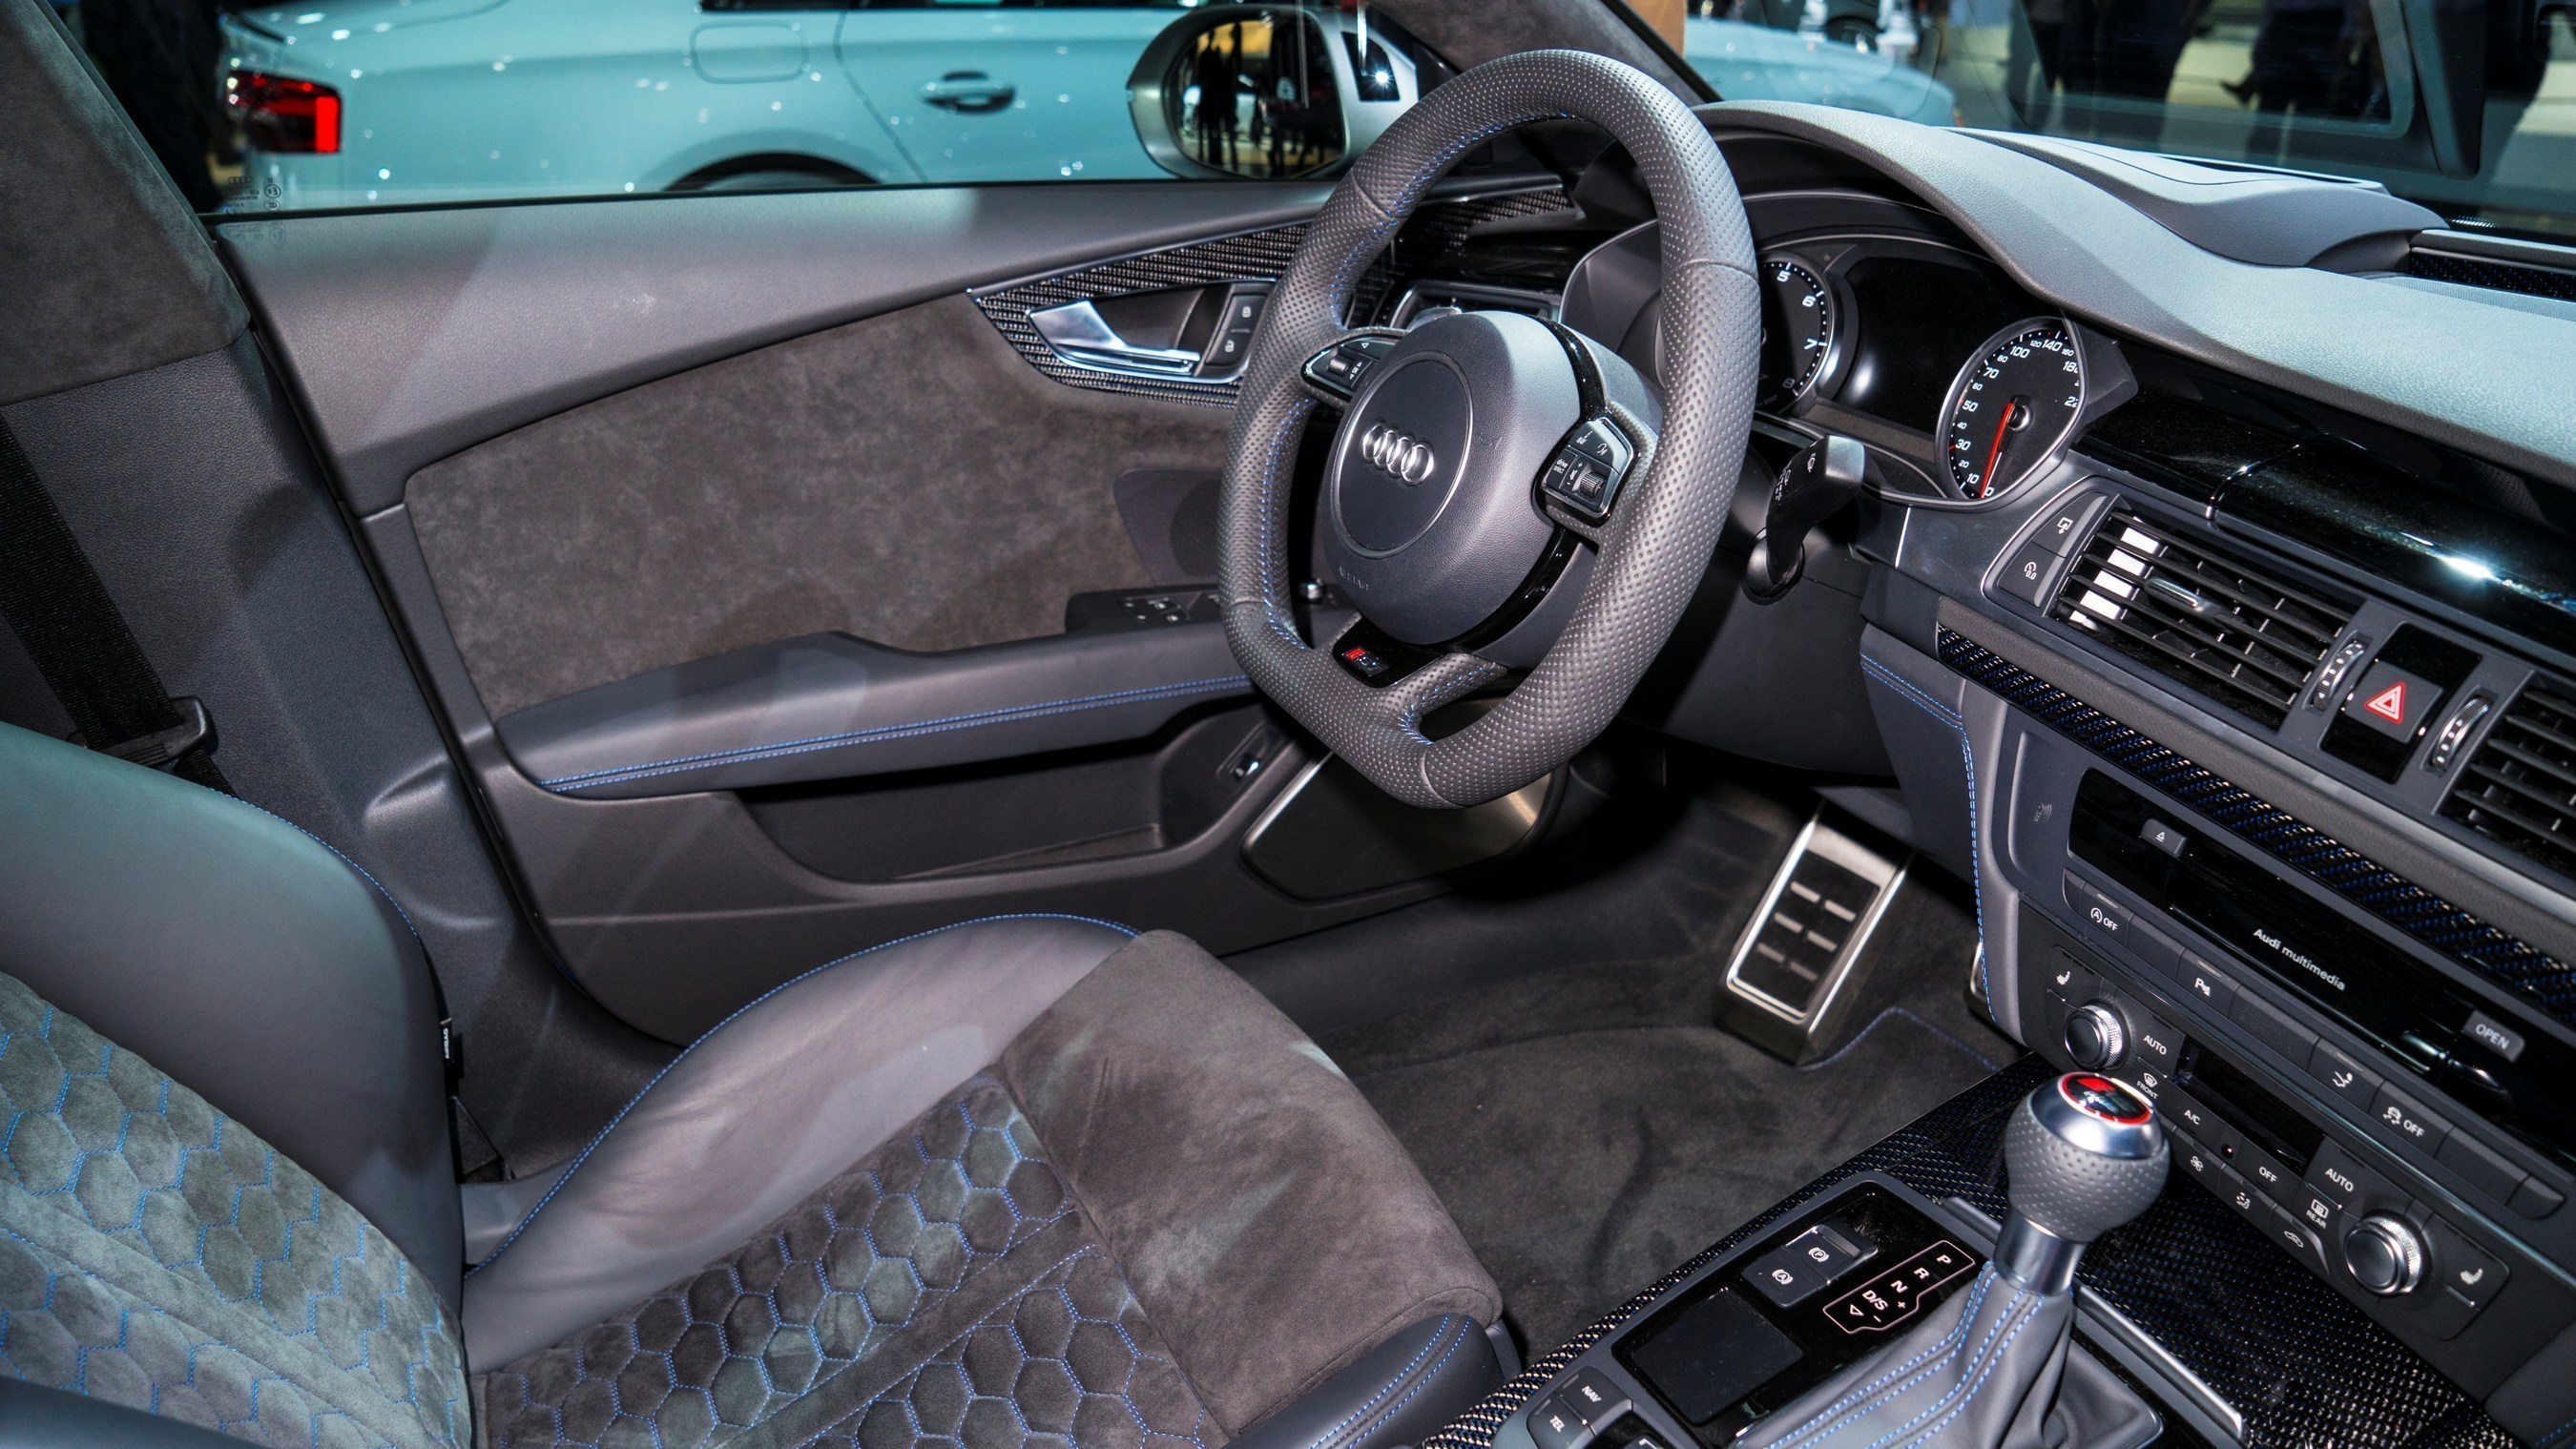 Audi RS-7 sports Alcantara in a honeycomb pattern on the seats and complementary Alcantara on the door panels.